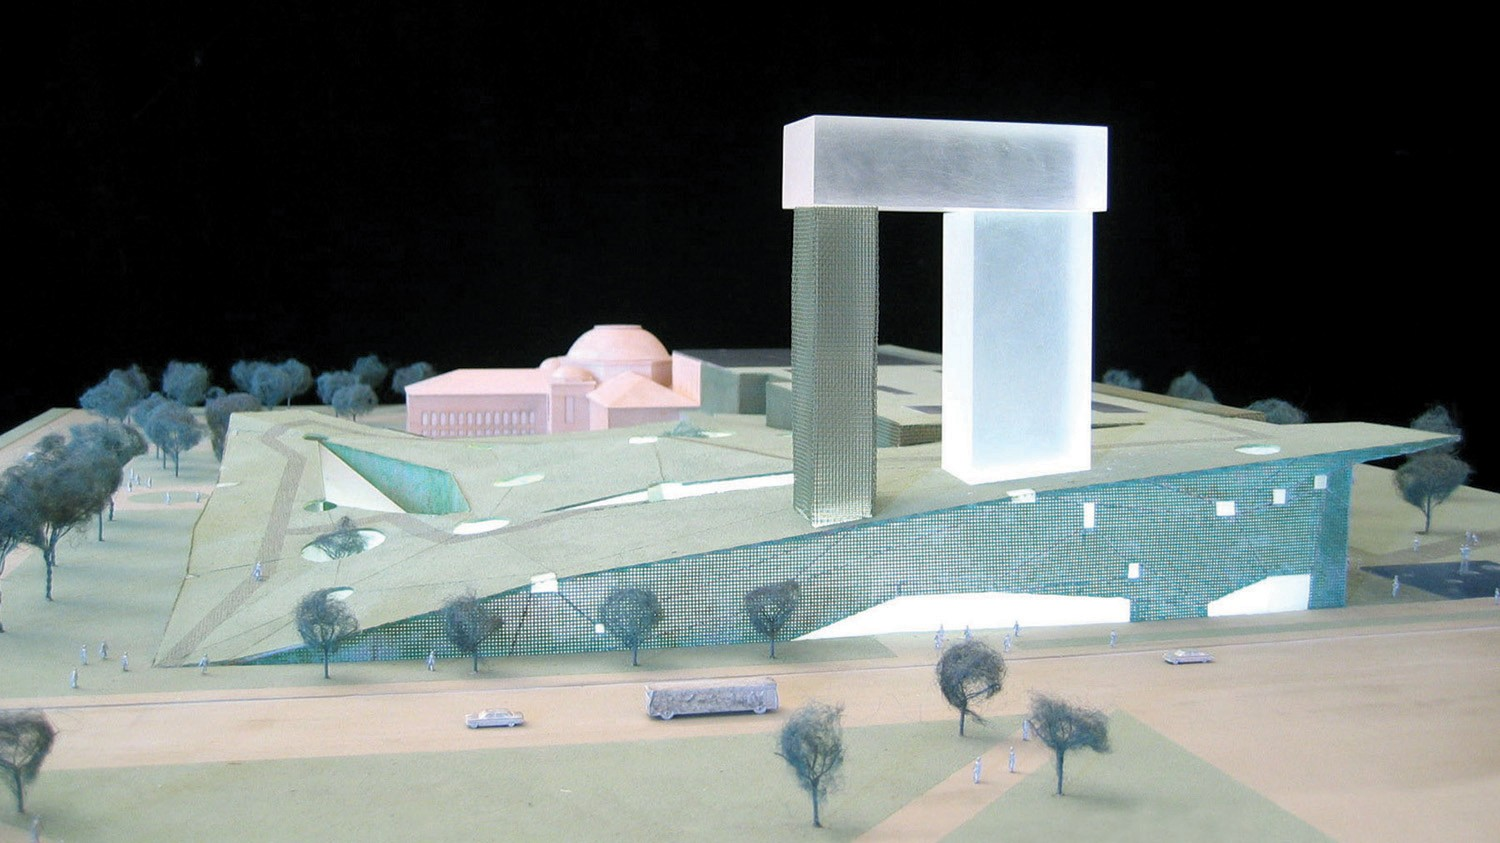 https://s3.us-east-2.amazonaws.com/steven-holl/uploads/projects/project-images/StevenHollArchitects_LANH_model3_WH.jpg